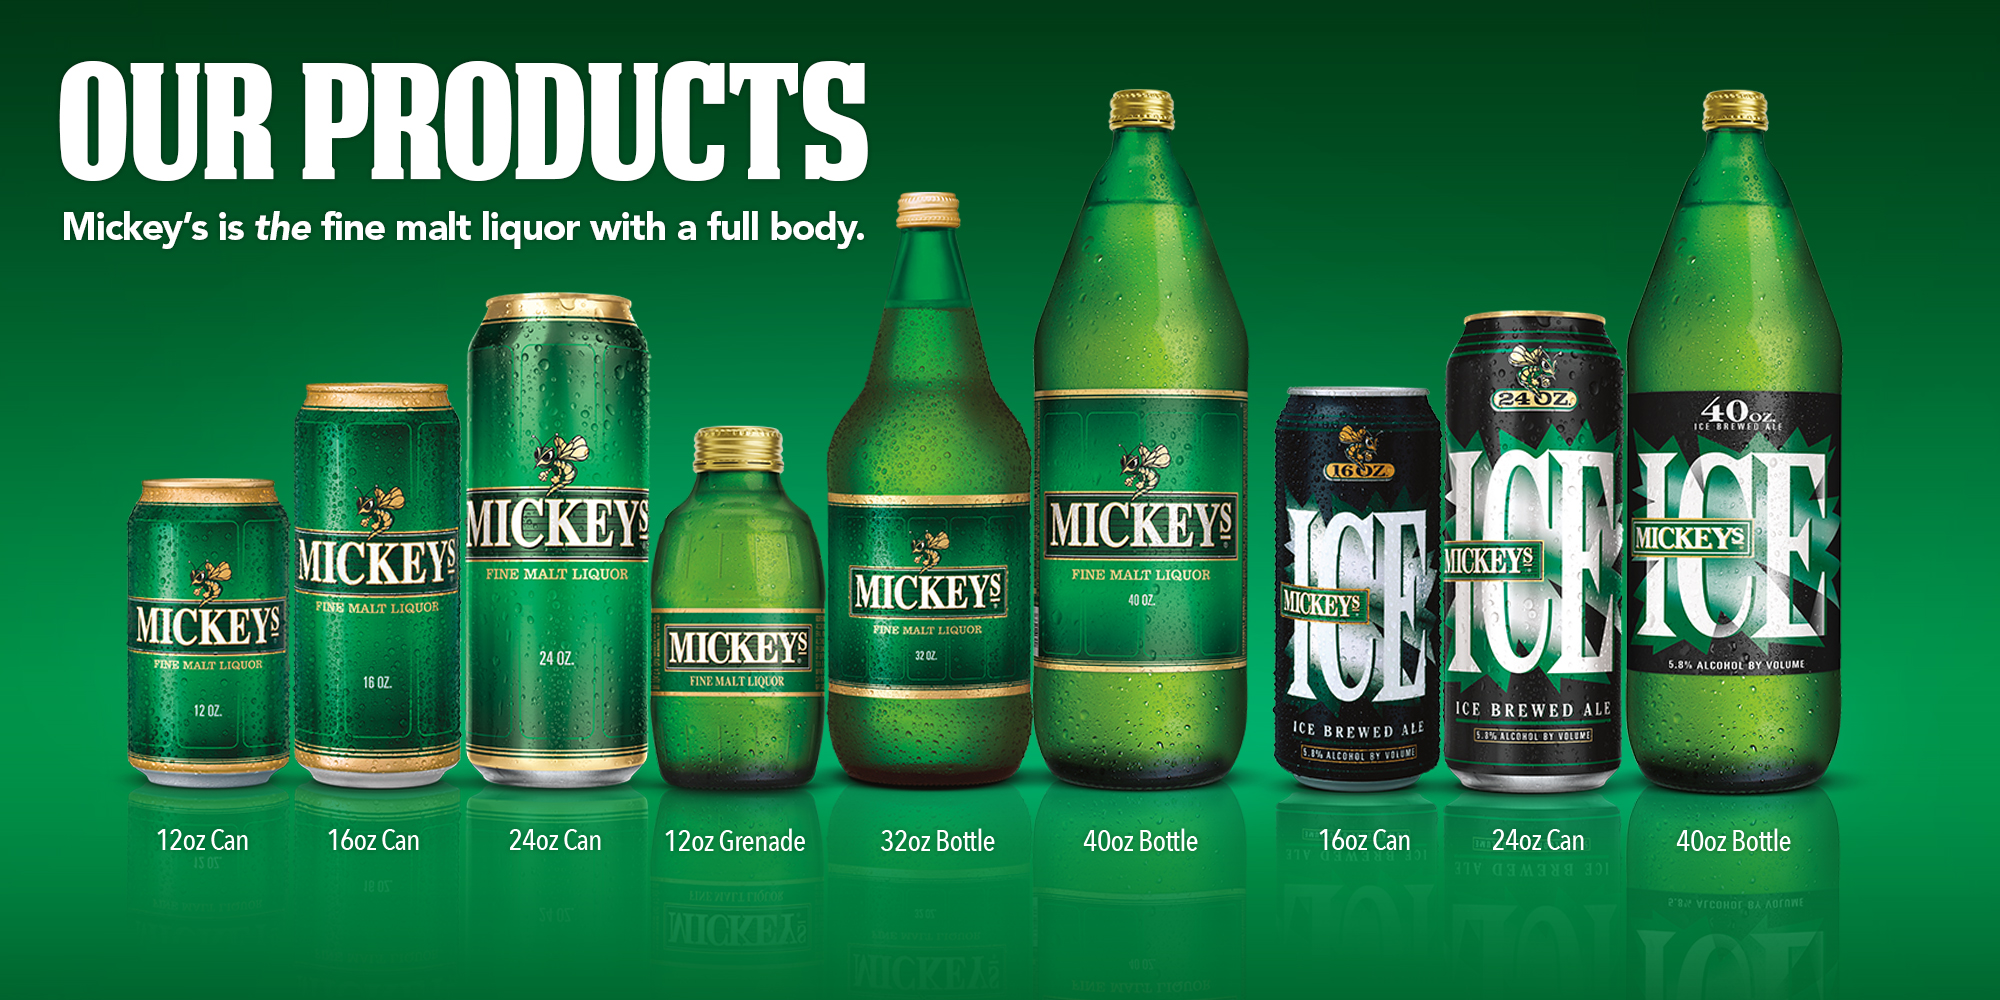 Mickey's Products